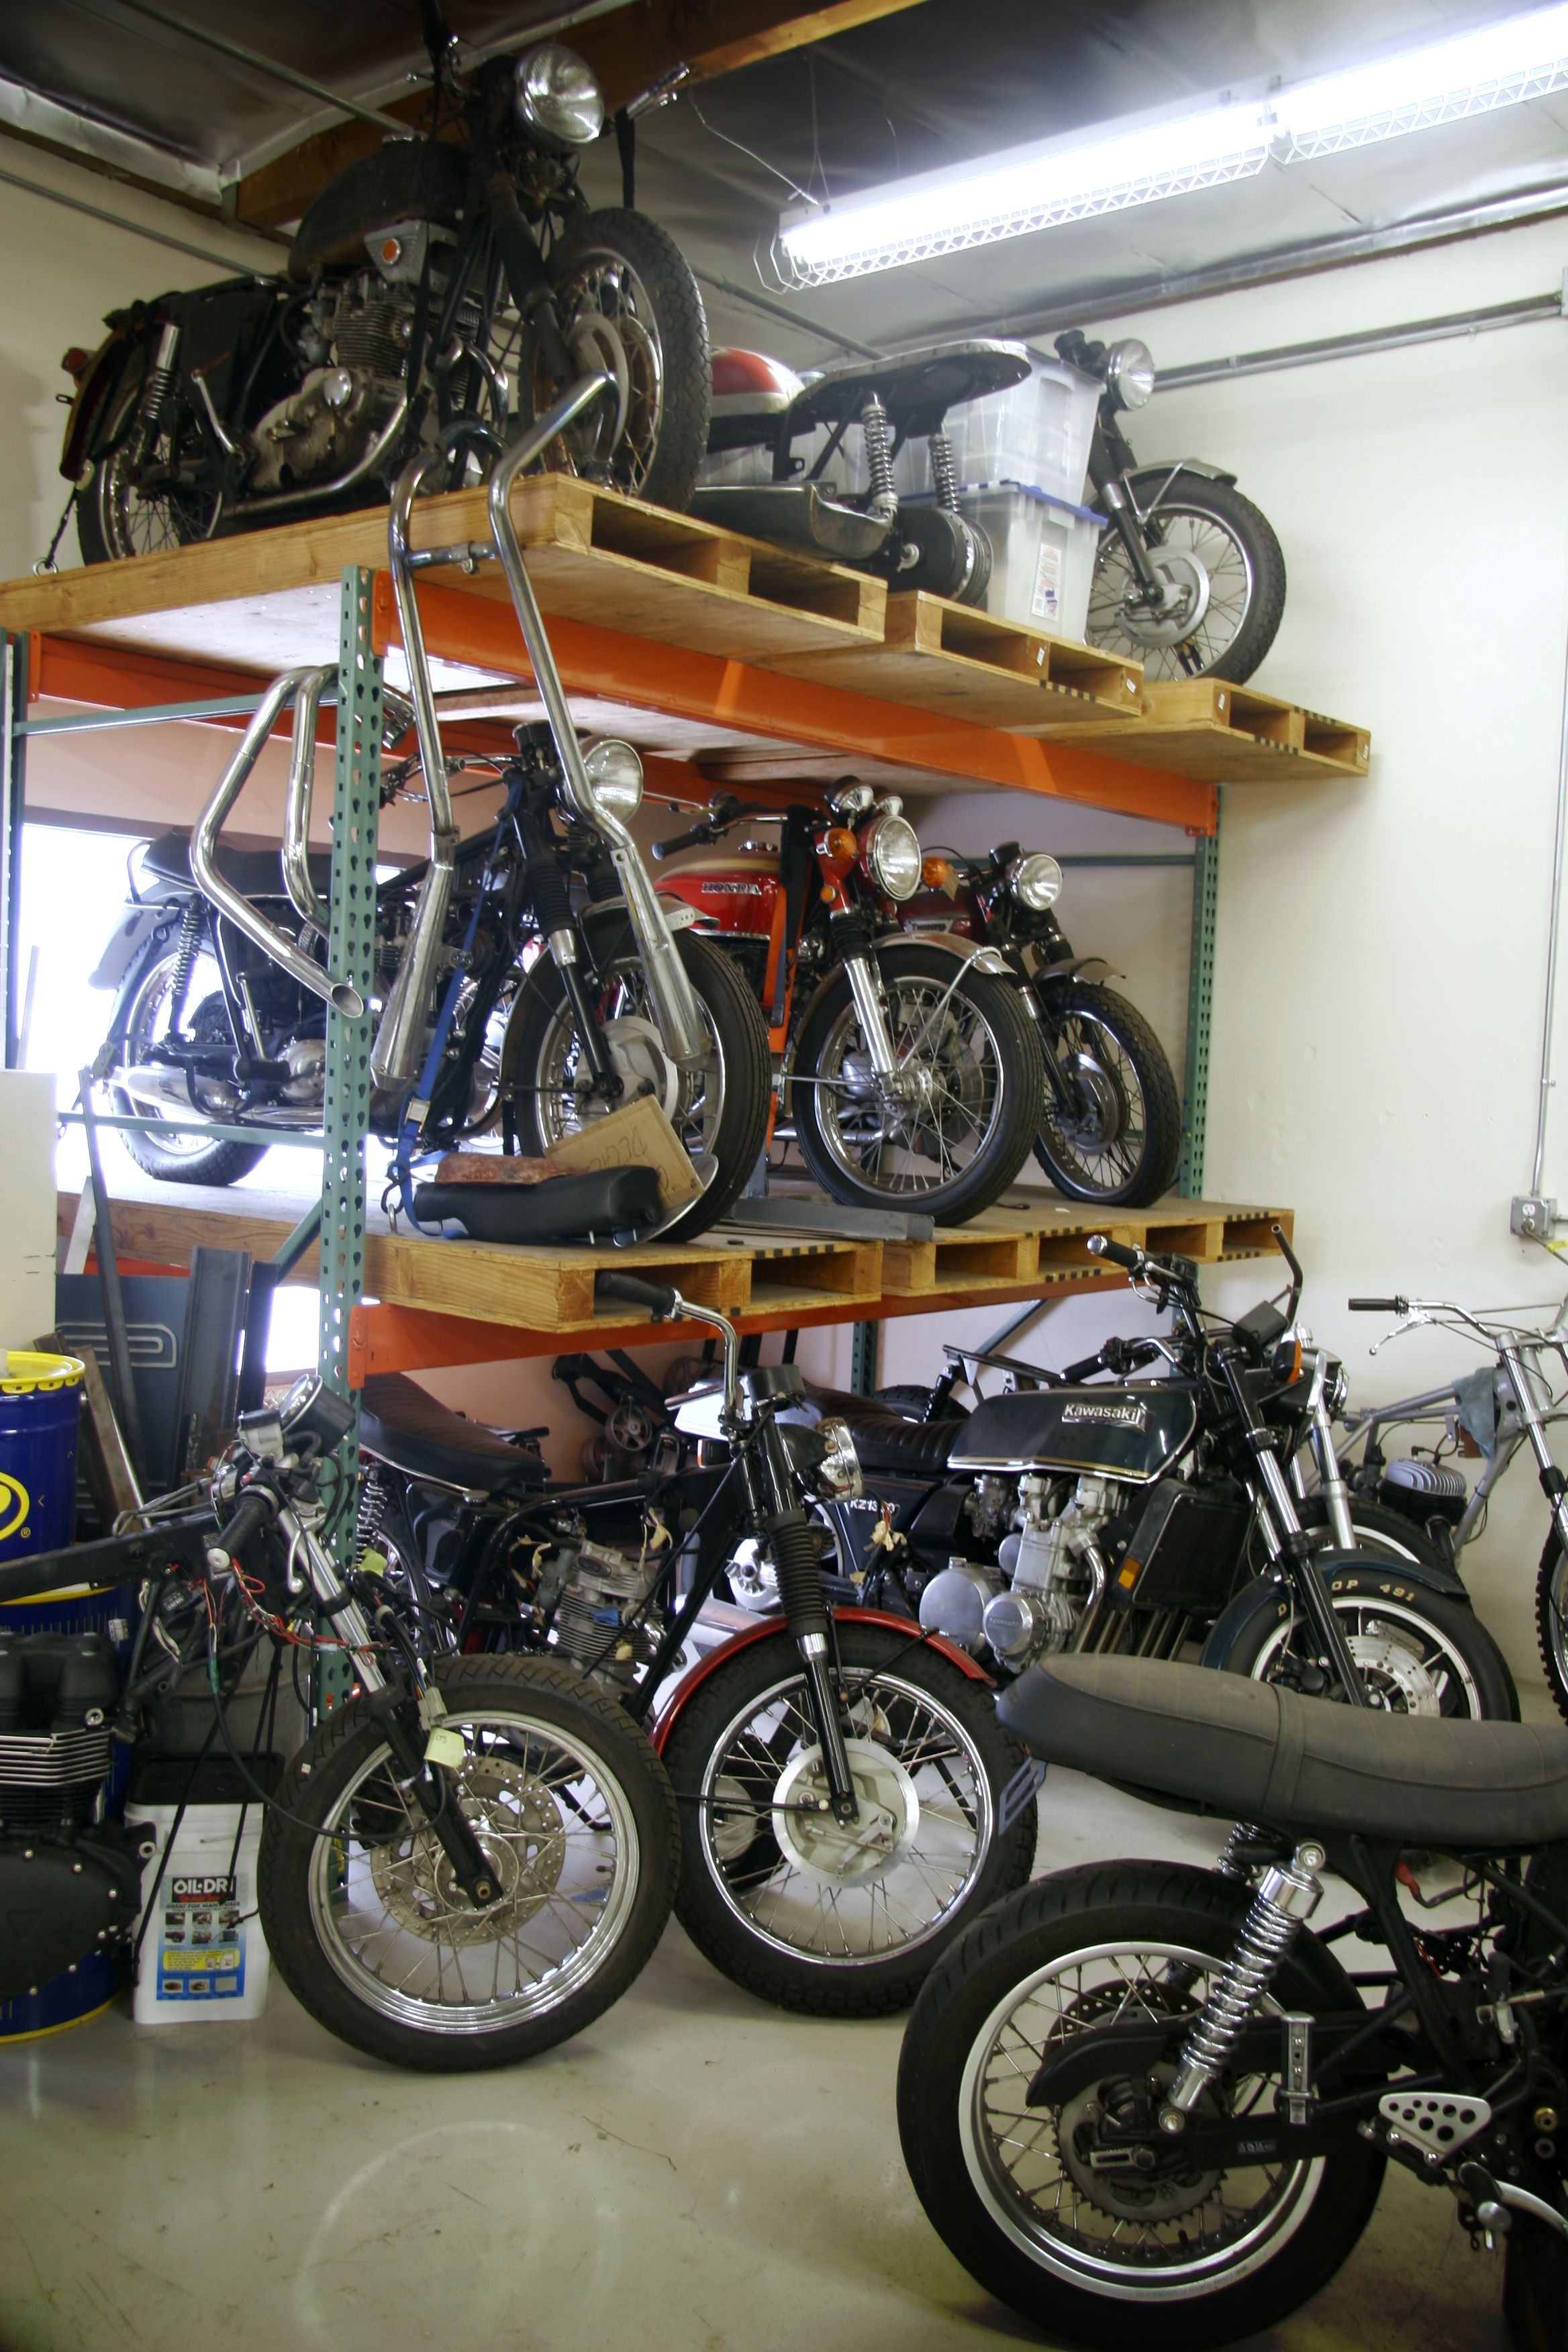 These Vintage Motorcycles In The Champions Moto Shop Are Waiting